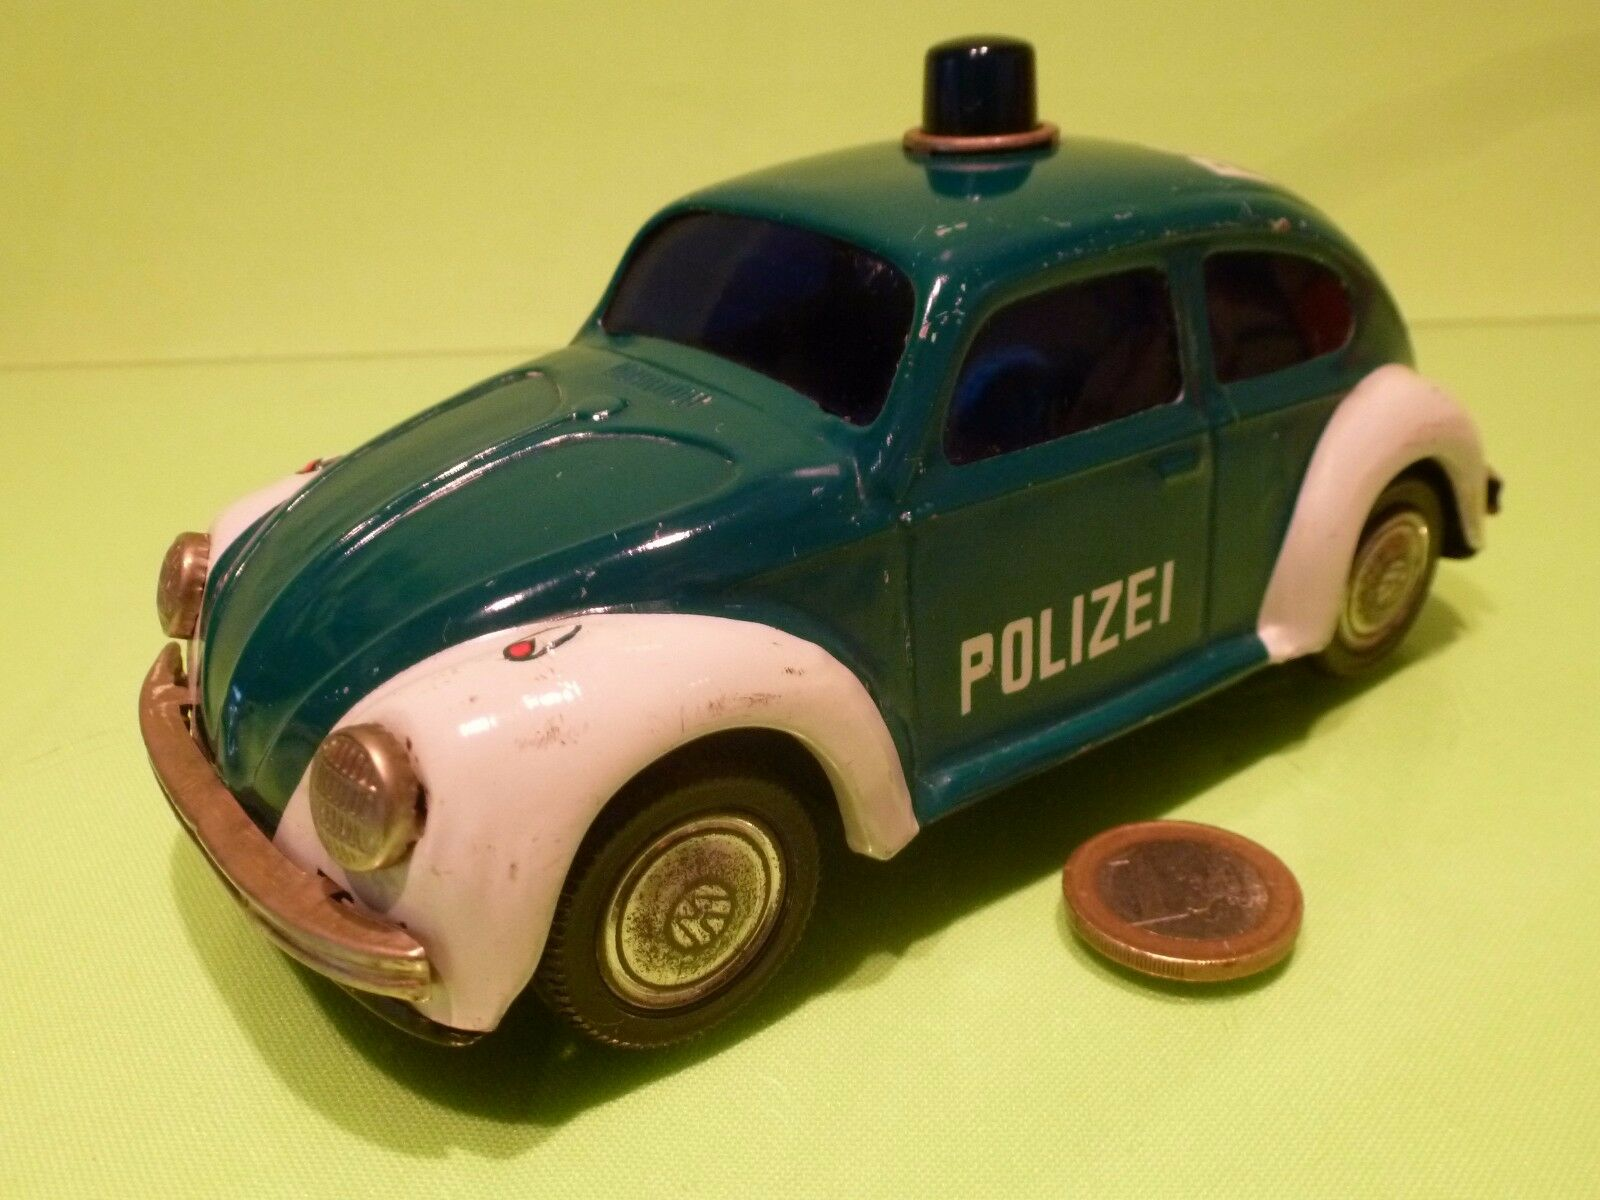 JAPAN TIN TOYS BLECH VW VOLKSWAGEN - POLIZEI - L17.0cm FRICTION - GOOD CONDITION